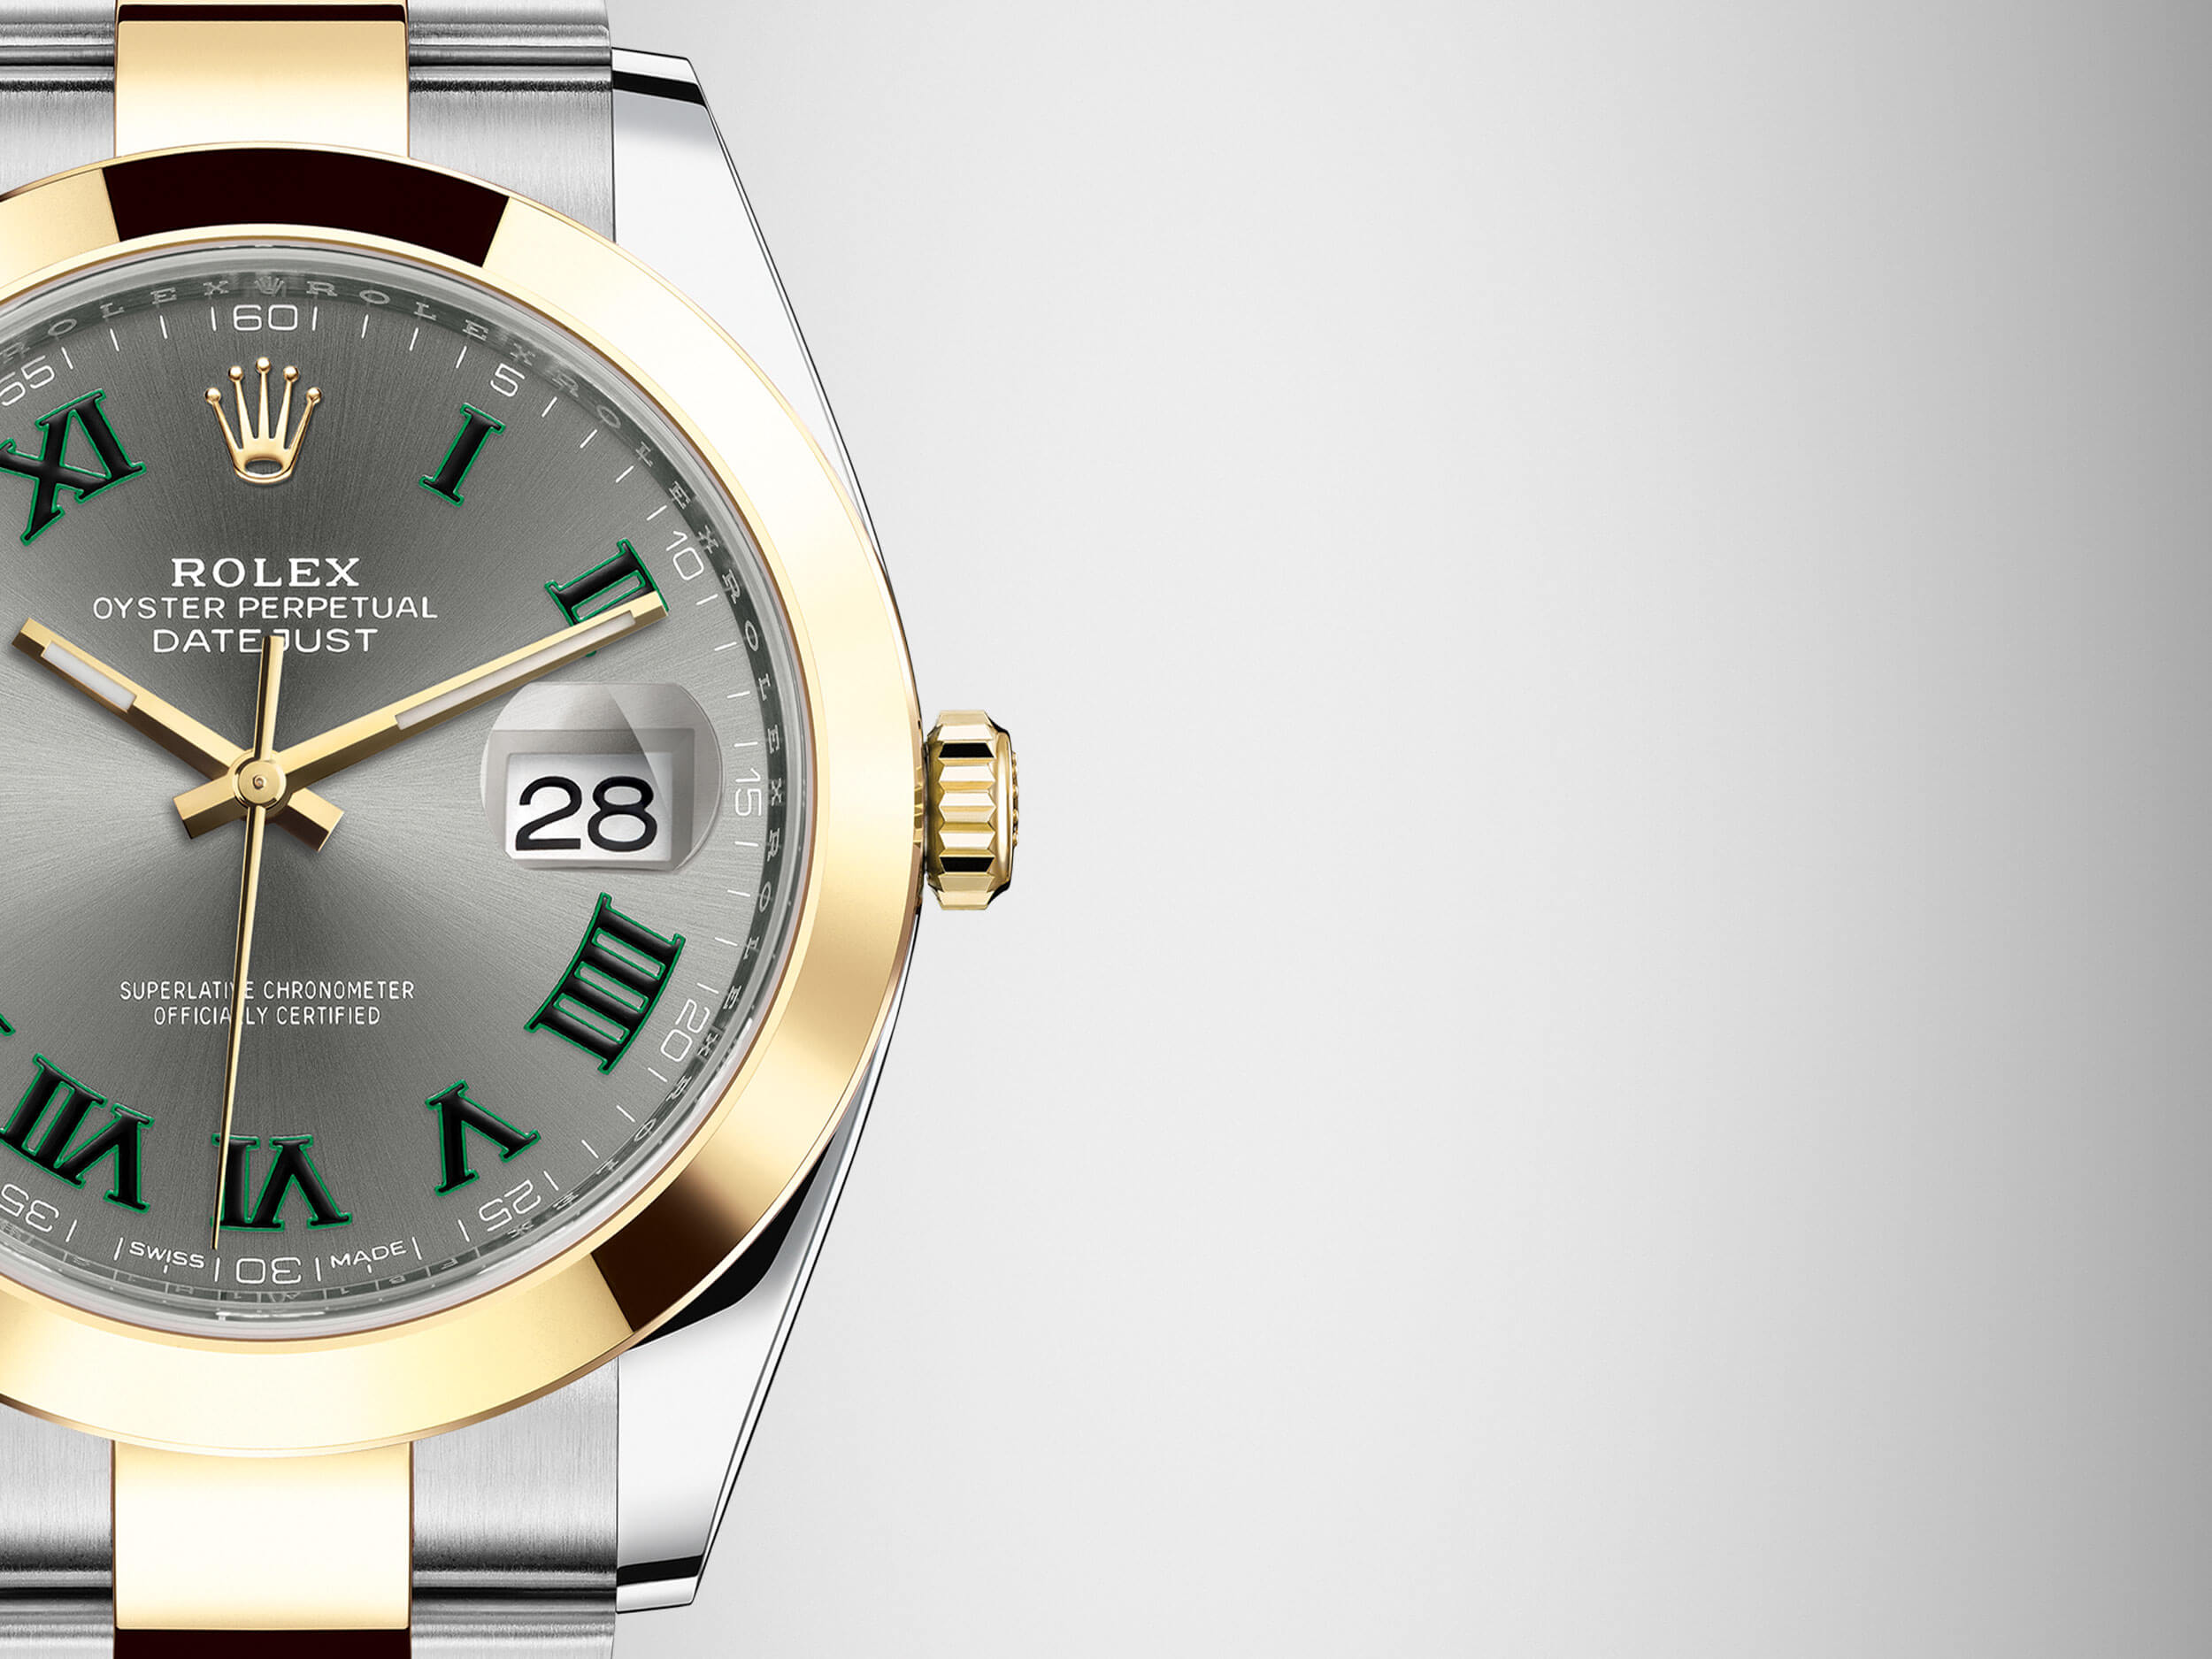 - The Rolex Collection